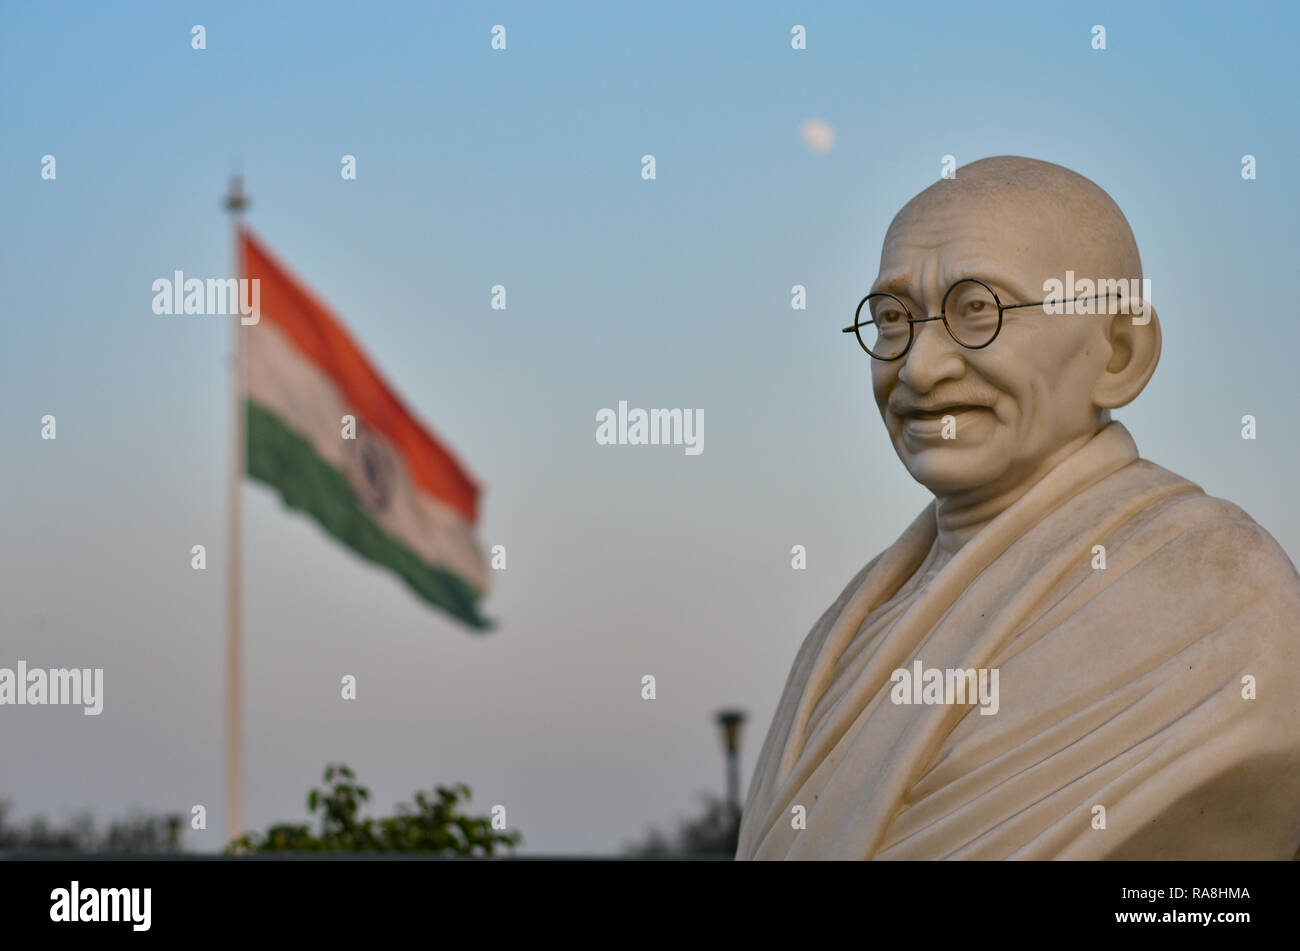 Bust of Gandhi statue with Indian tricolor in the background in Connaught Place, Delhi, India. Mahatma Gandhi is the Father of nation. - Stock Image